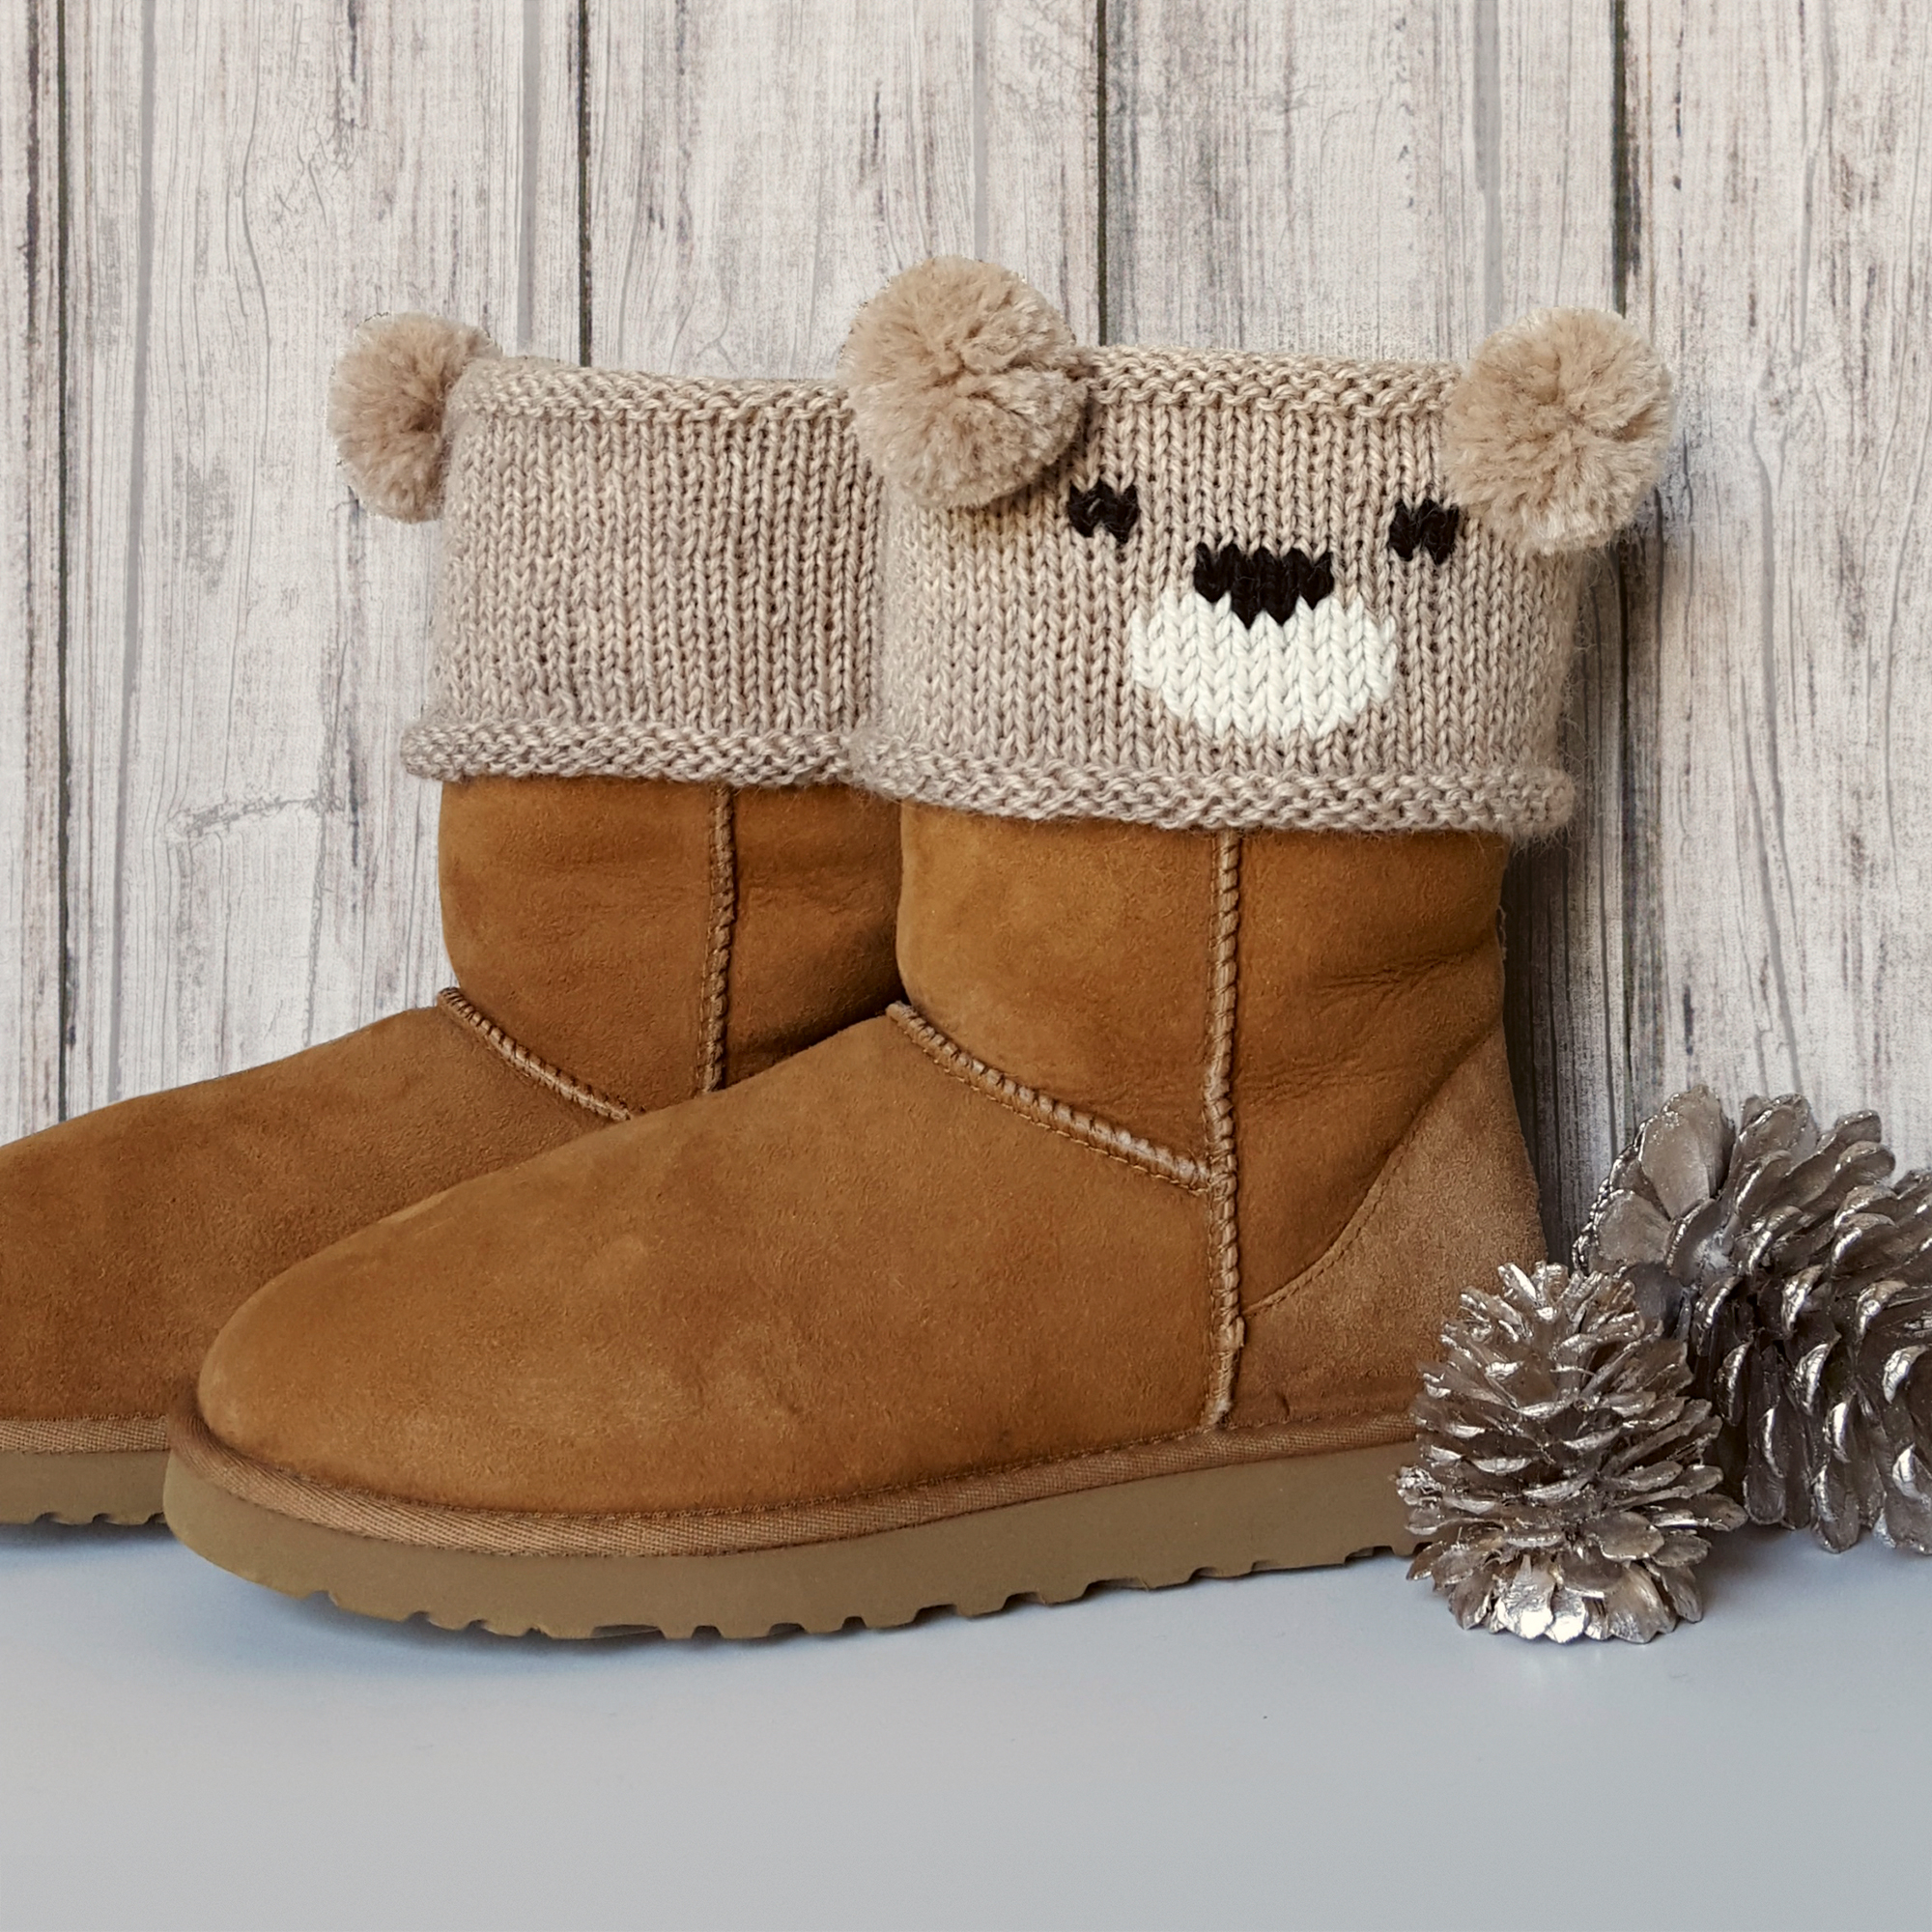 Free Knitting Patterns For Boot Toppers Knit Teddy Bear Boot Toppers